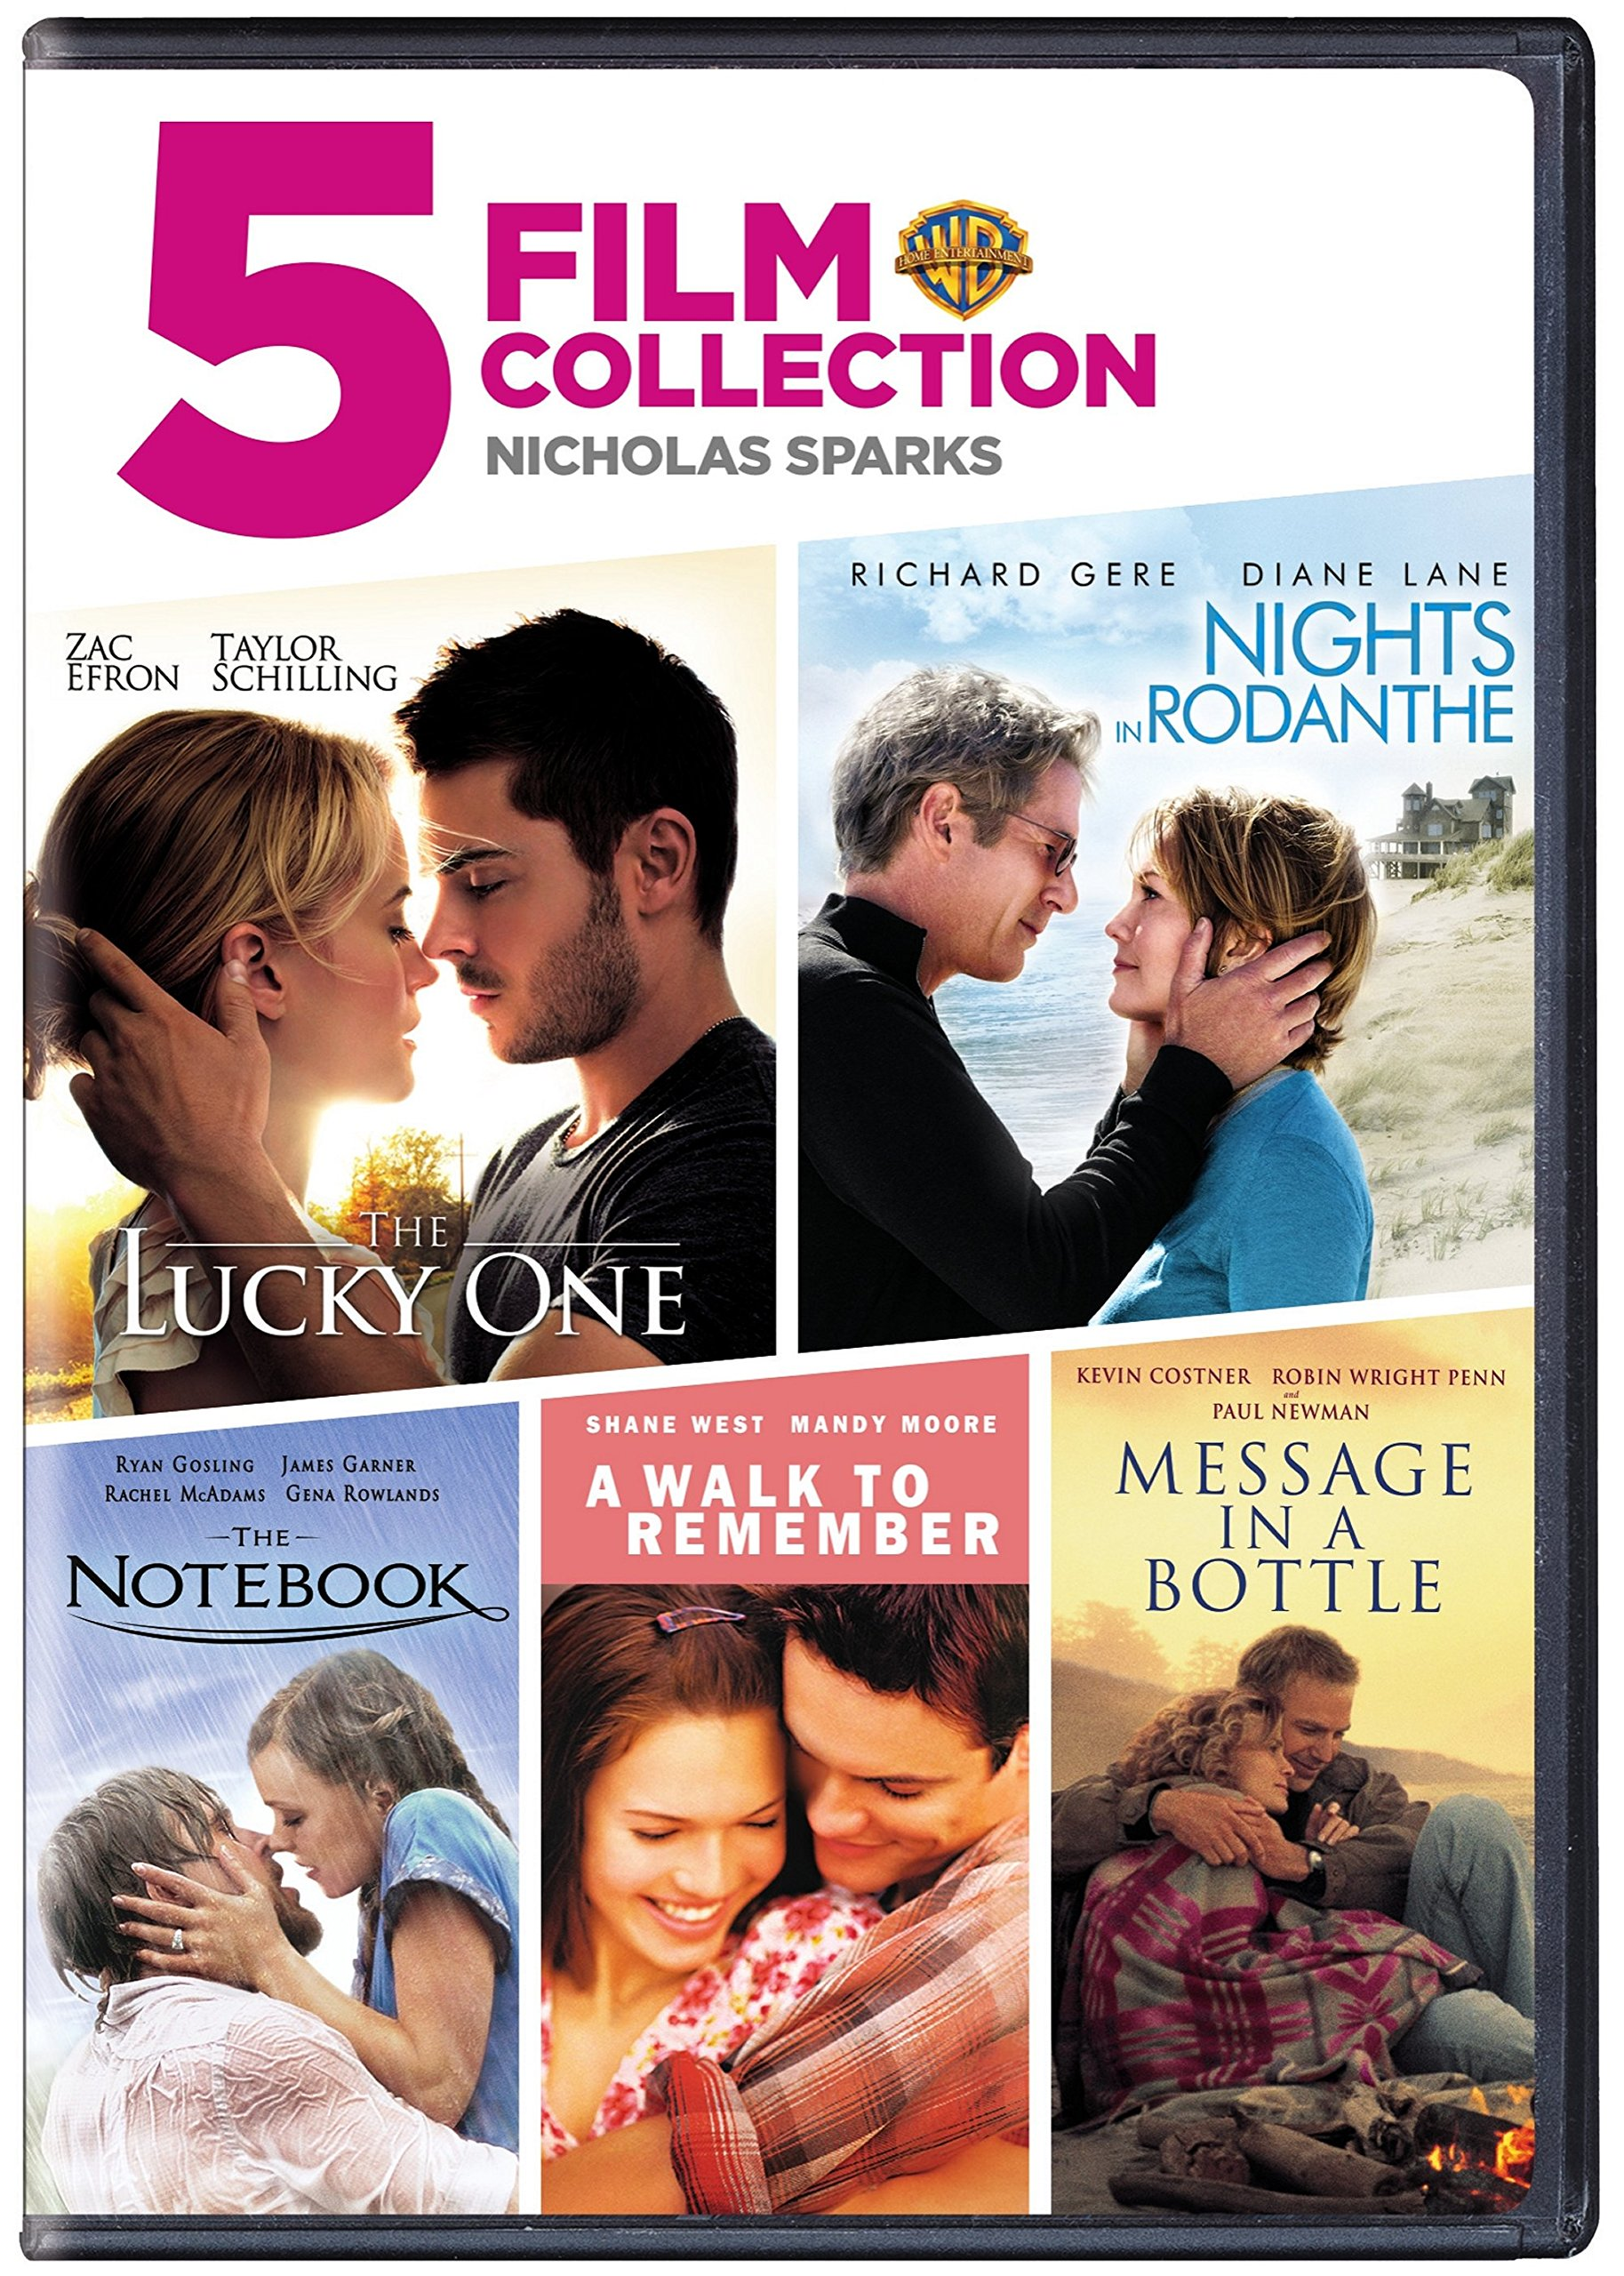 Nicholas Sparks 5 Film Collection (5pk) - Gregg's Books